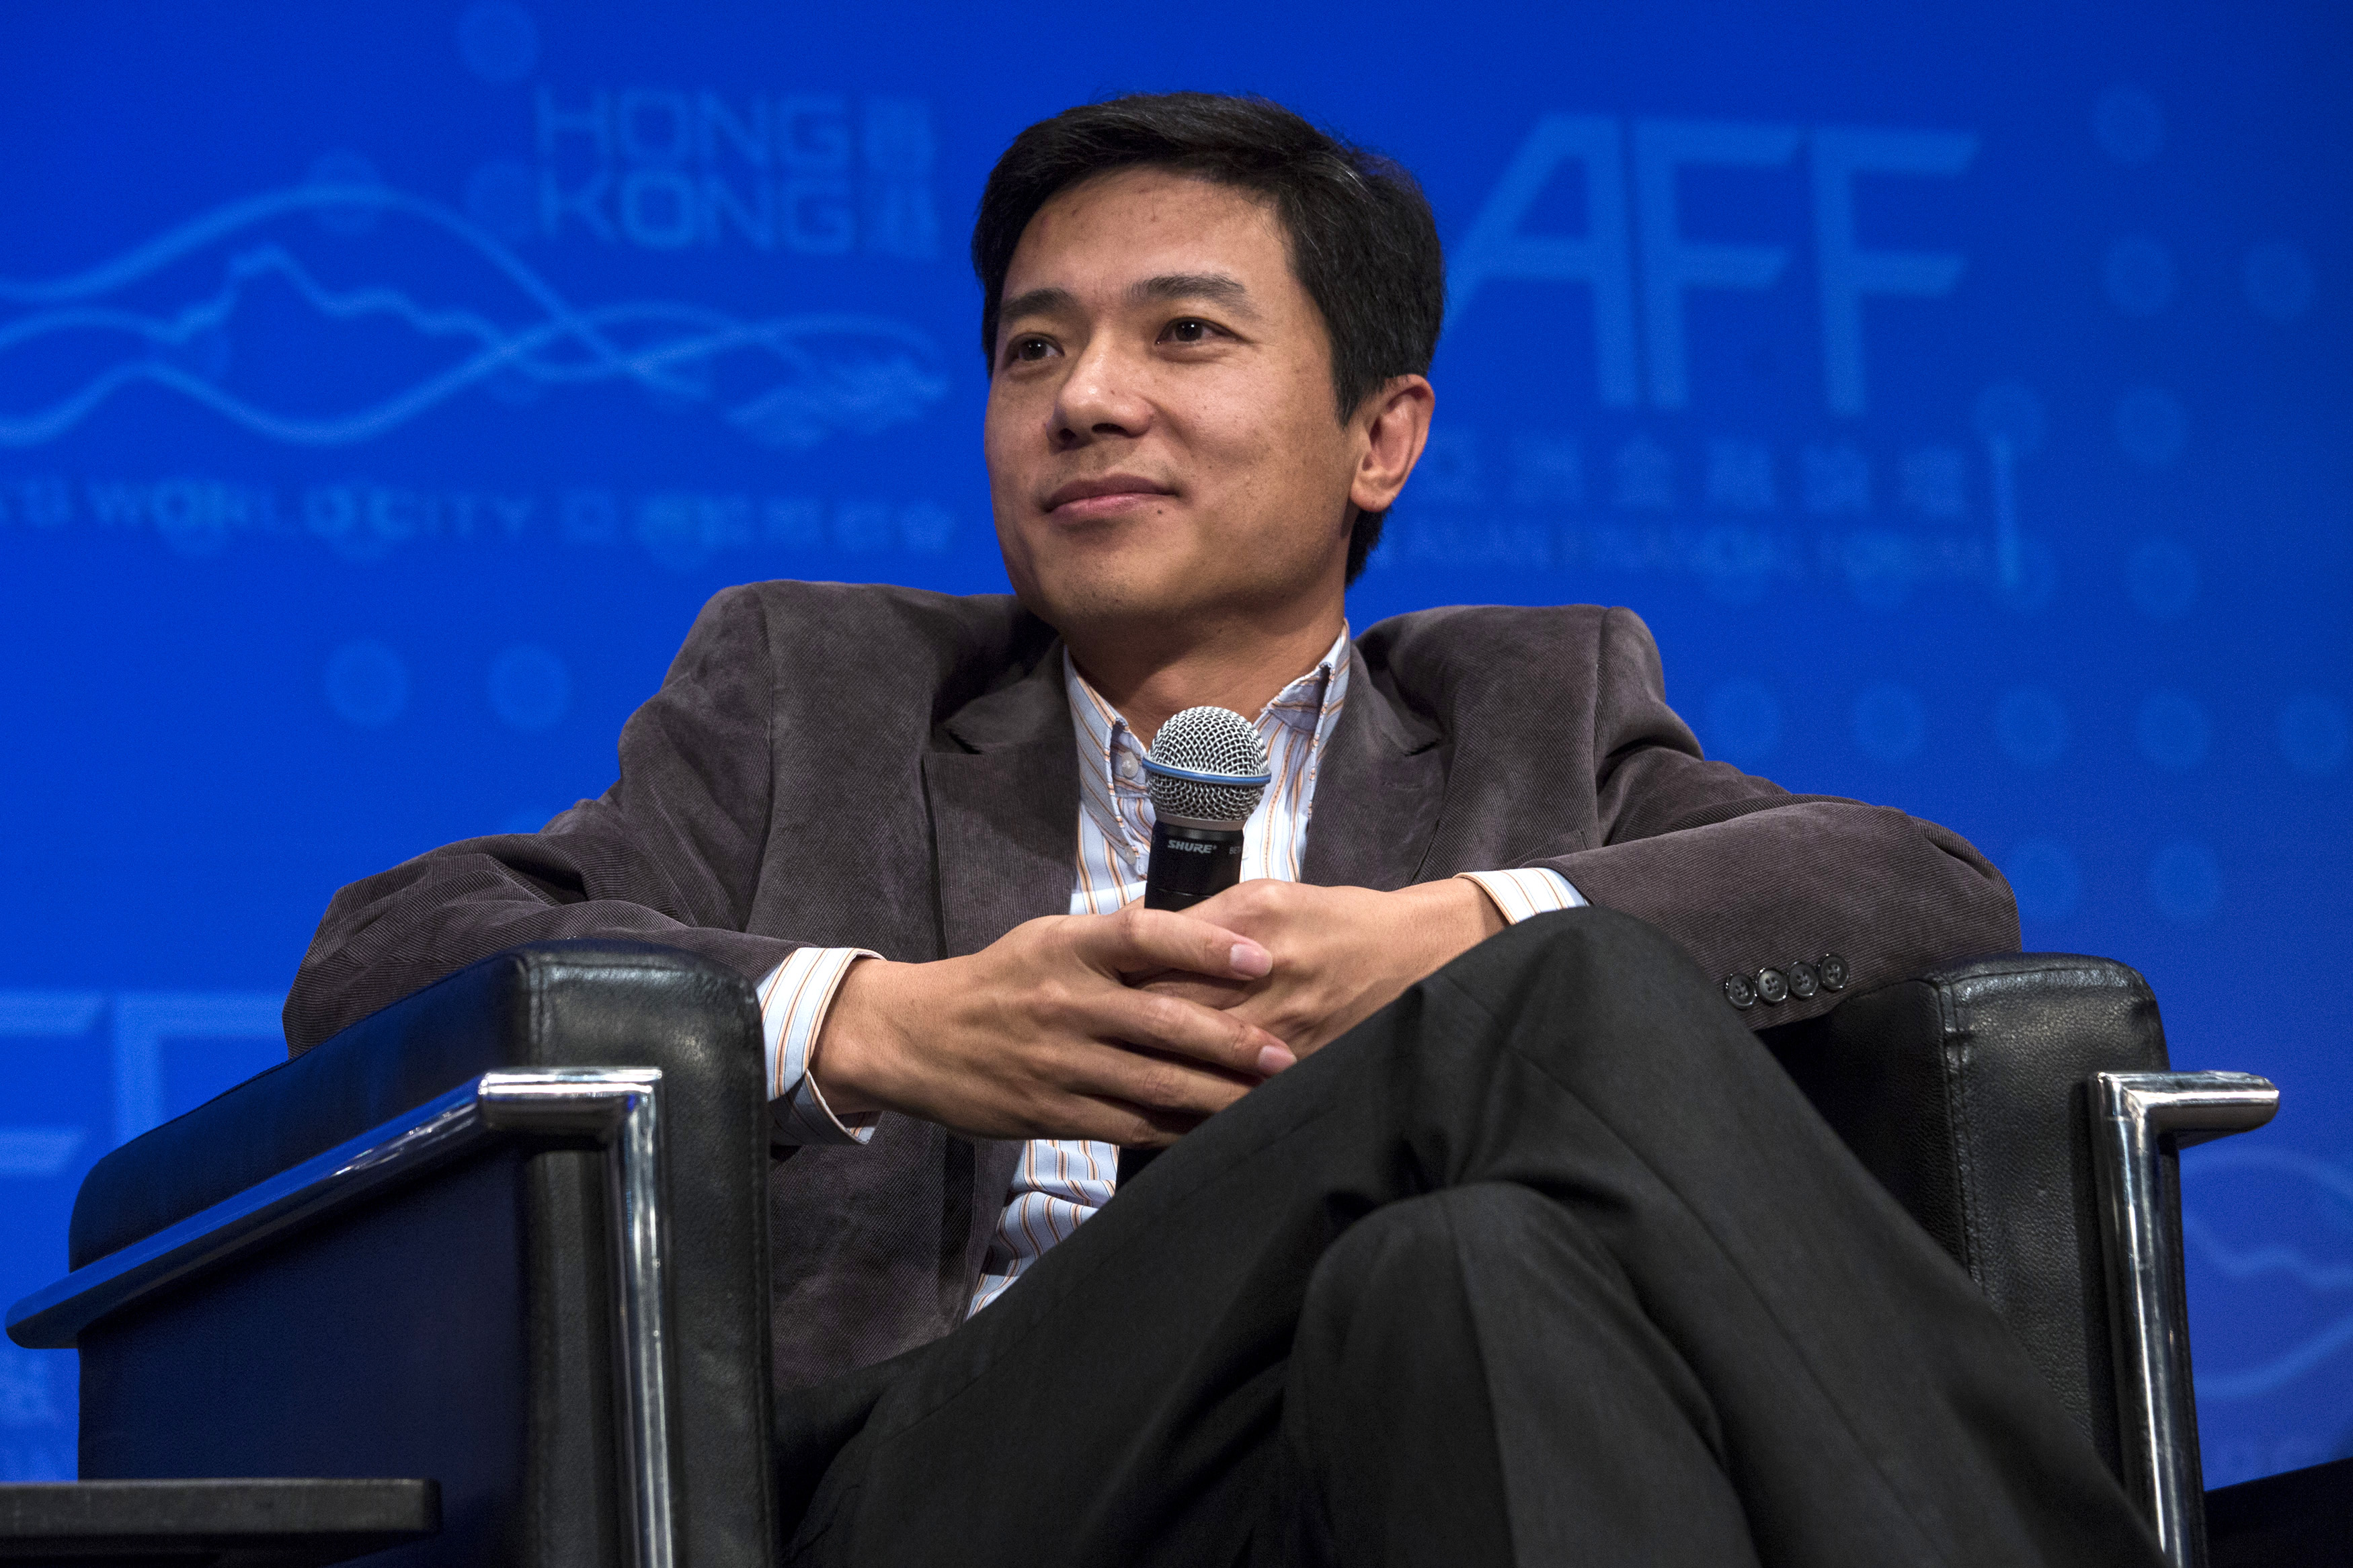 Chinese-language Internet search provider Baidu Inc. Chairman and CEO Robin Li attends the Asian Financial Forum (AFF) in Hong Kong January 13, 2014.